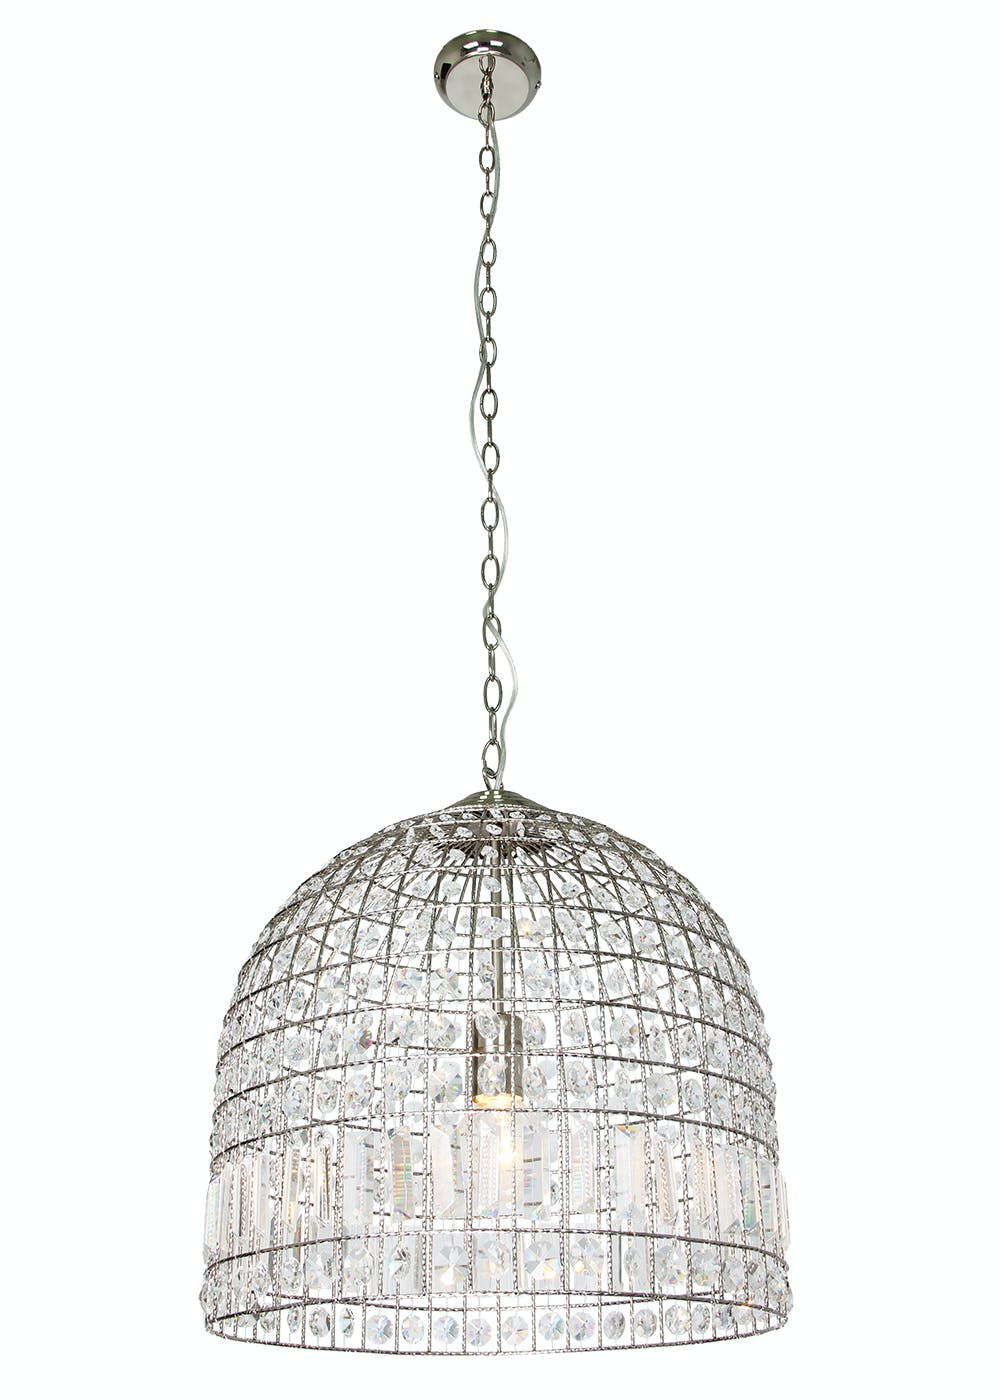 structure pendant dome chandeliers light homewares domayne lighting